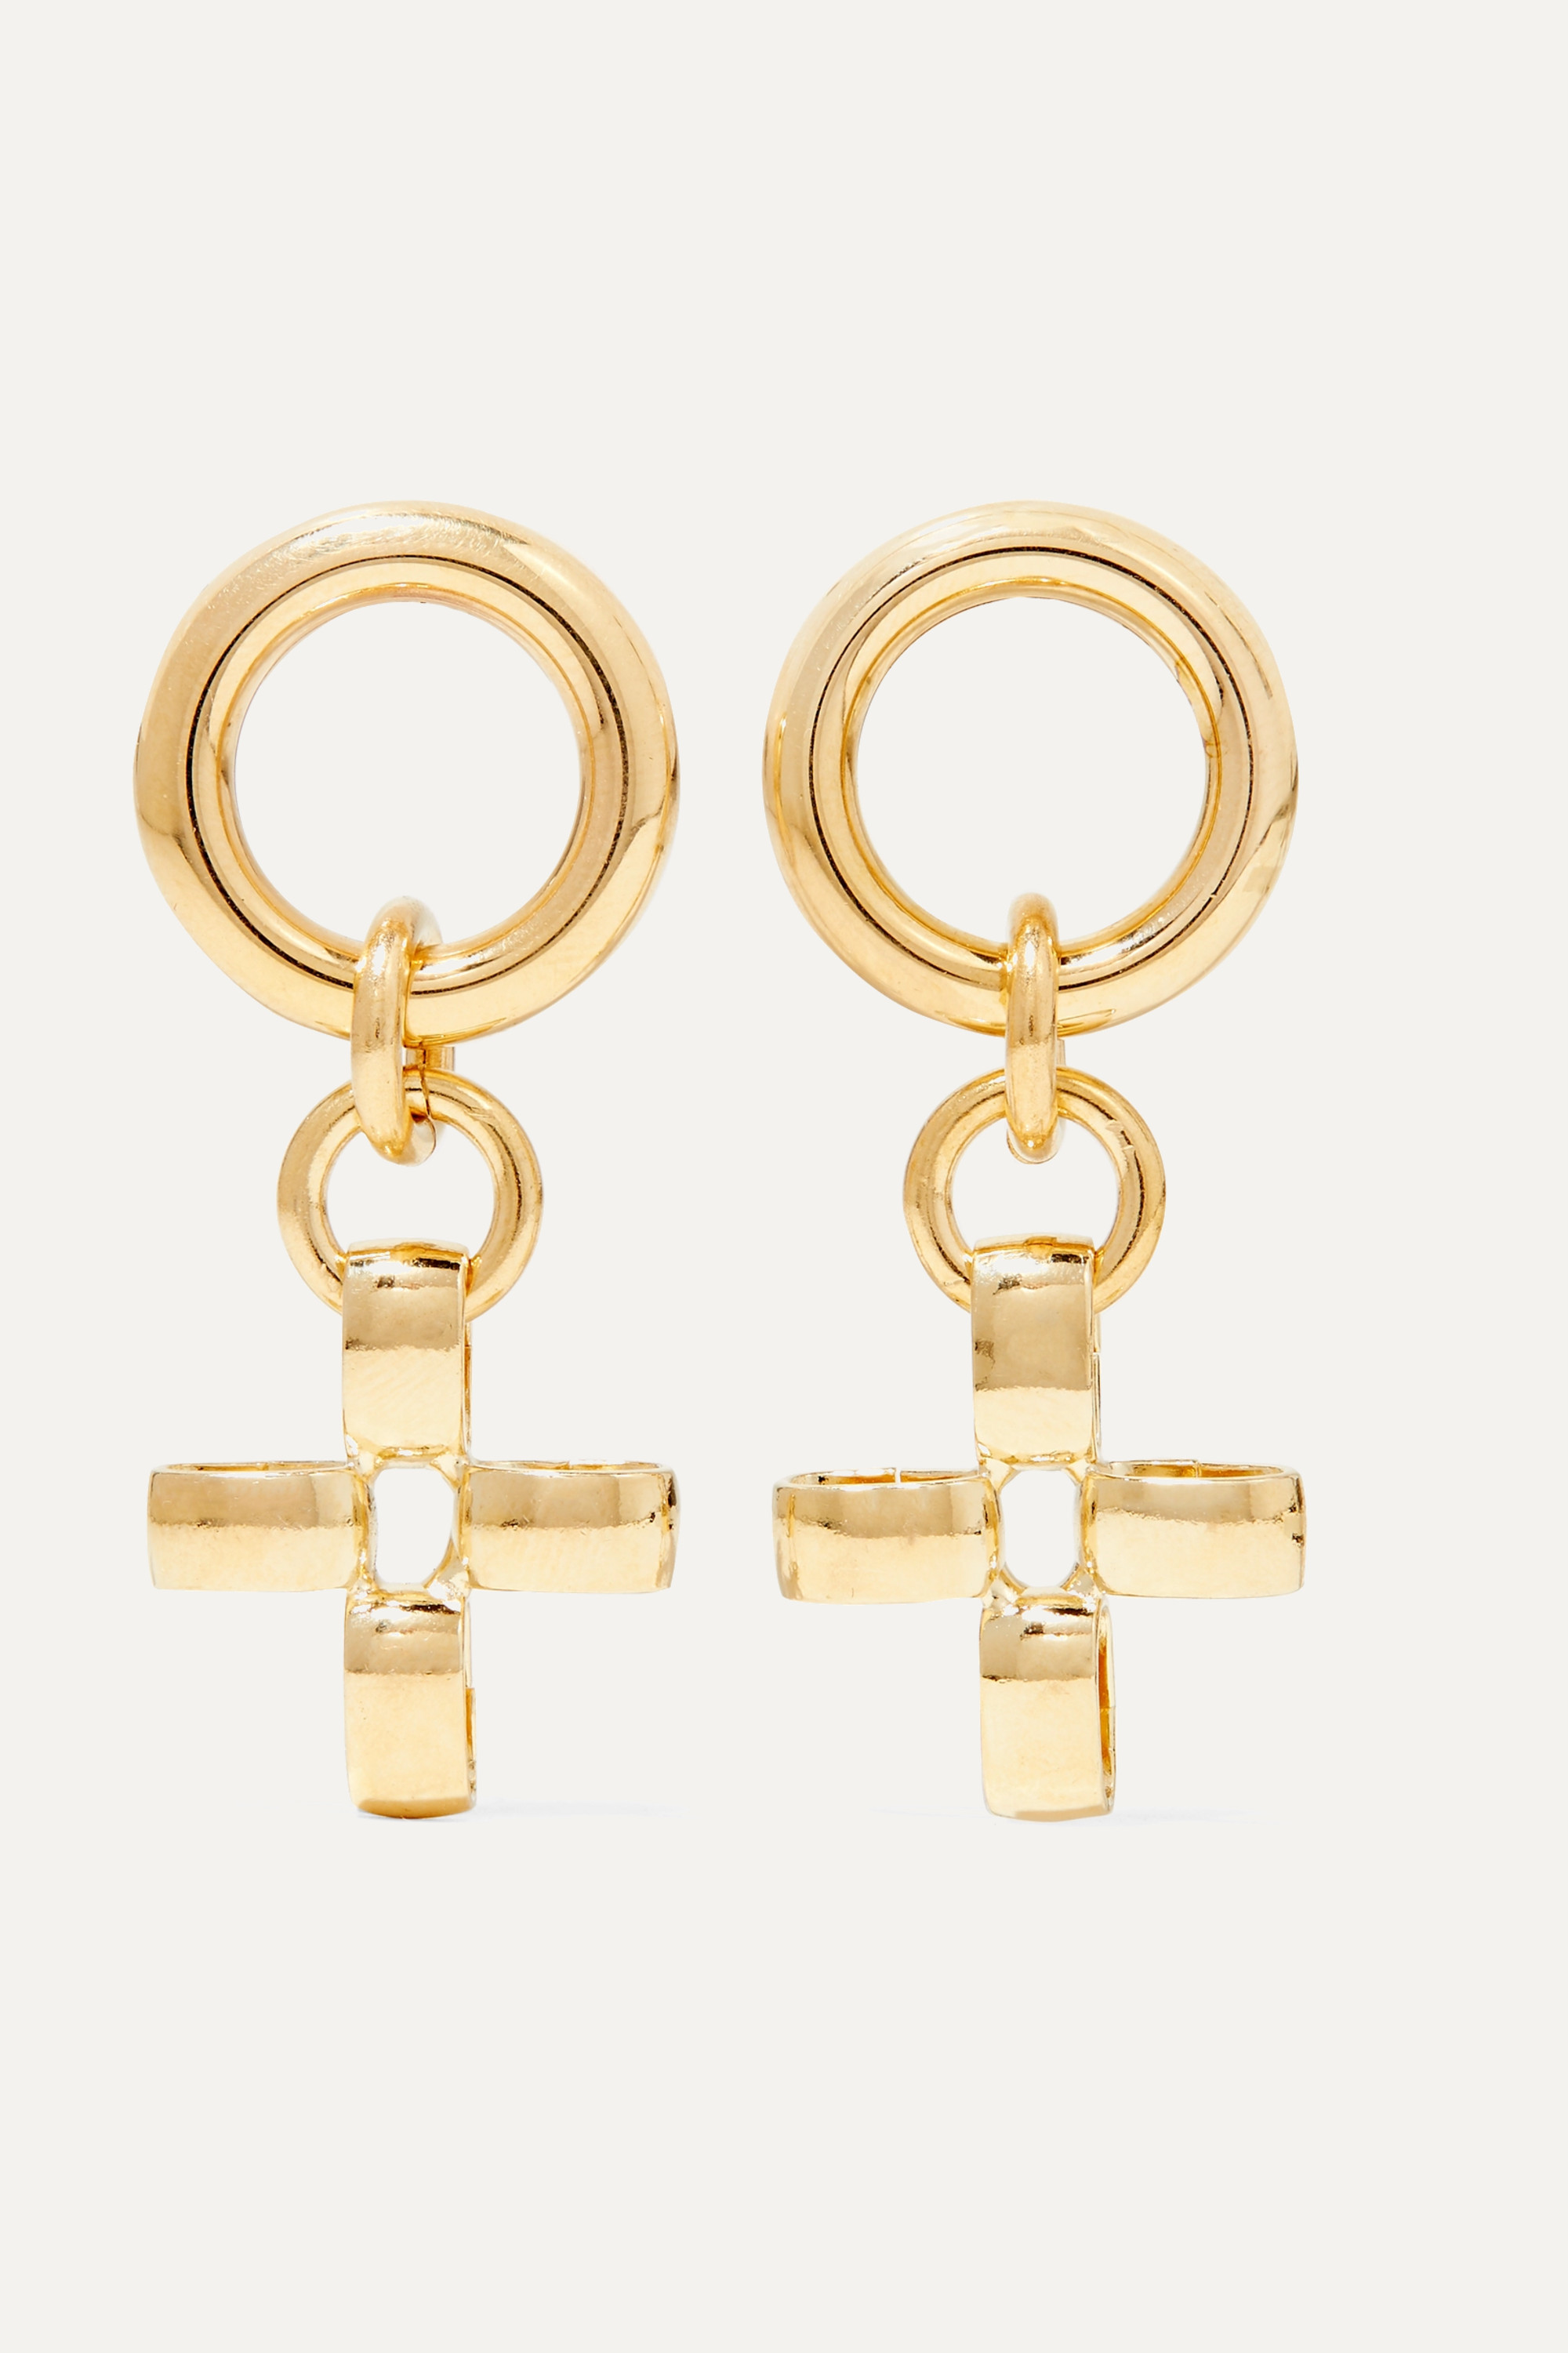 Laura Lombardi + NET SUSTAIN Fiore gold-tone earrings